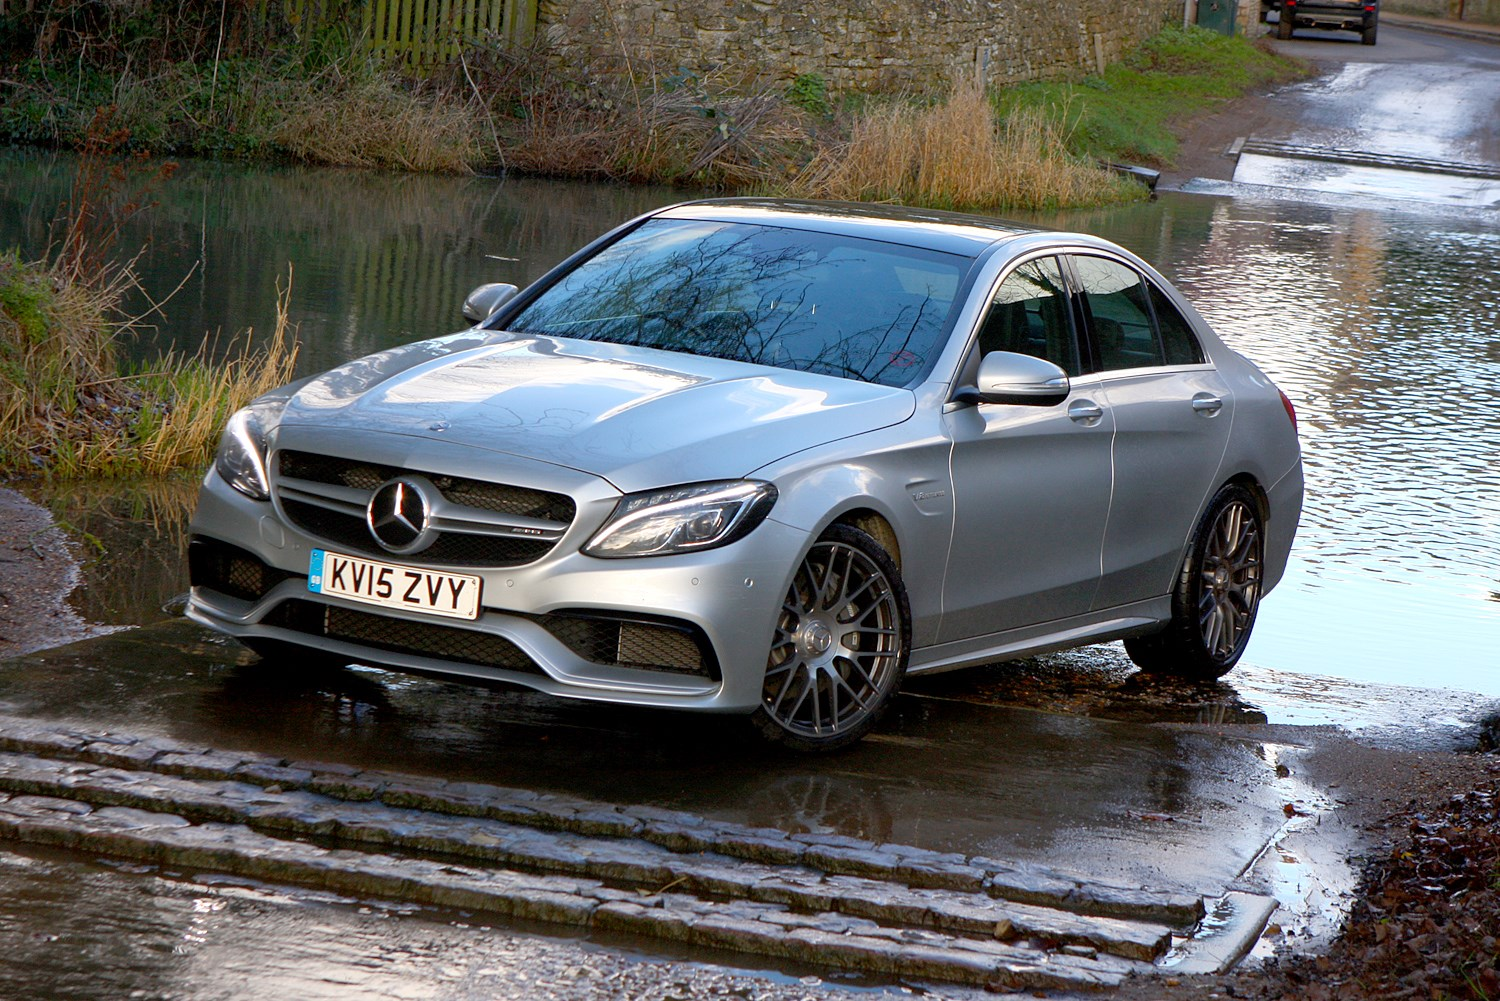 Mercedes Benz C Class Amg 2015 Photos Parkers